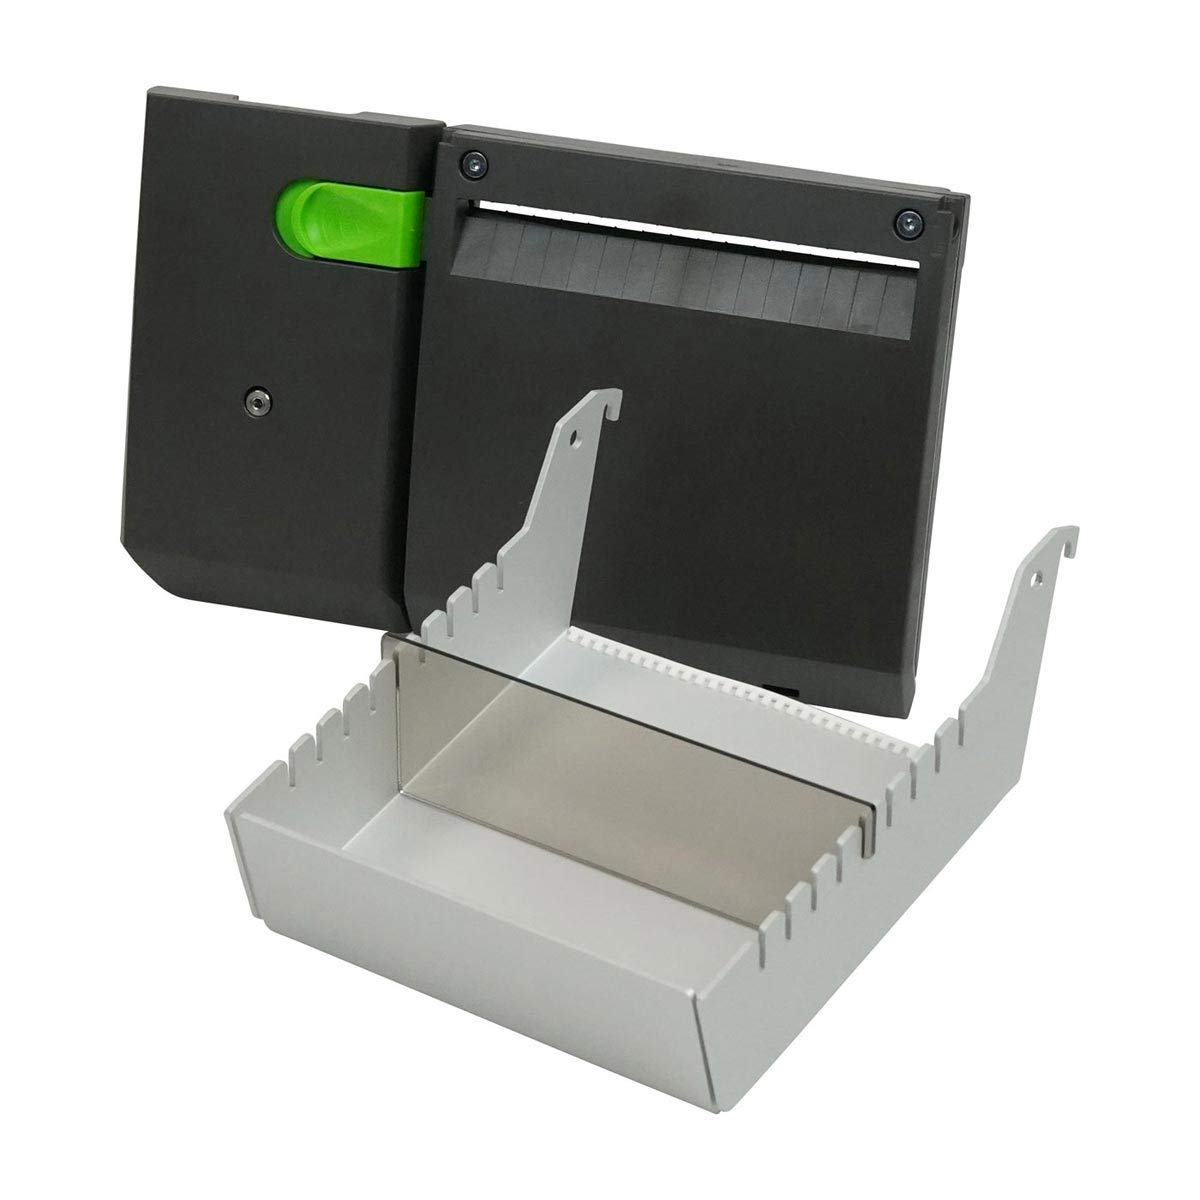 Bradyprinter I7100 Accessory Max 53% OFF Cutter Guillotine Standard Ng Luxury goods